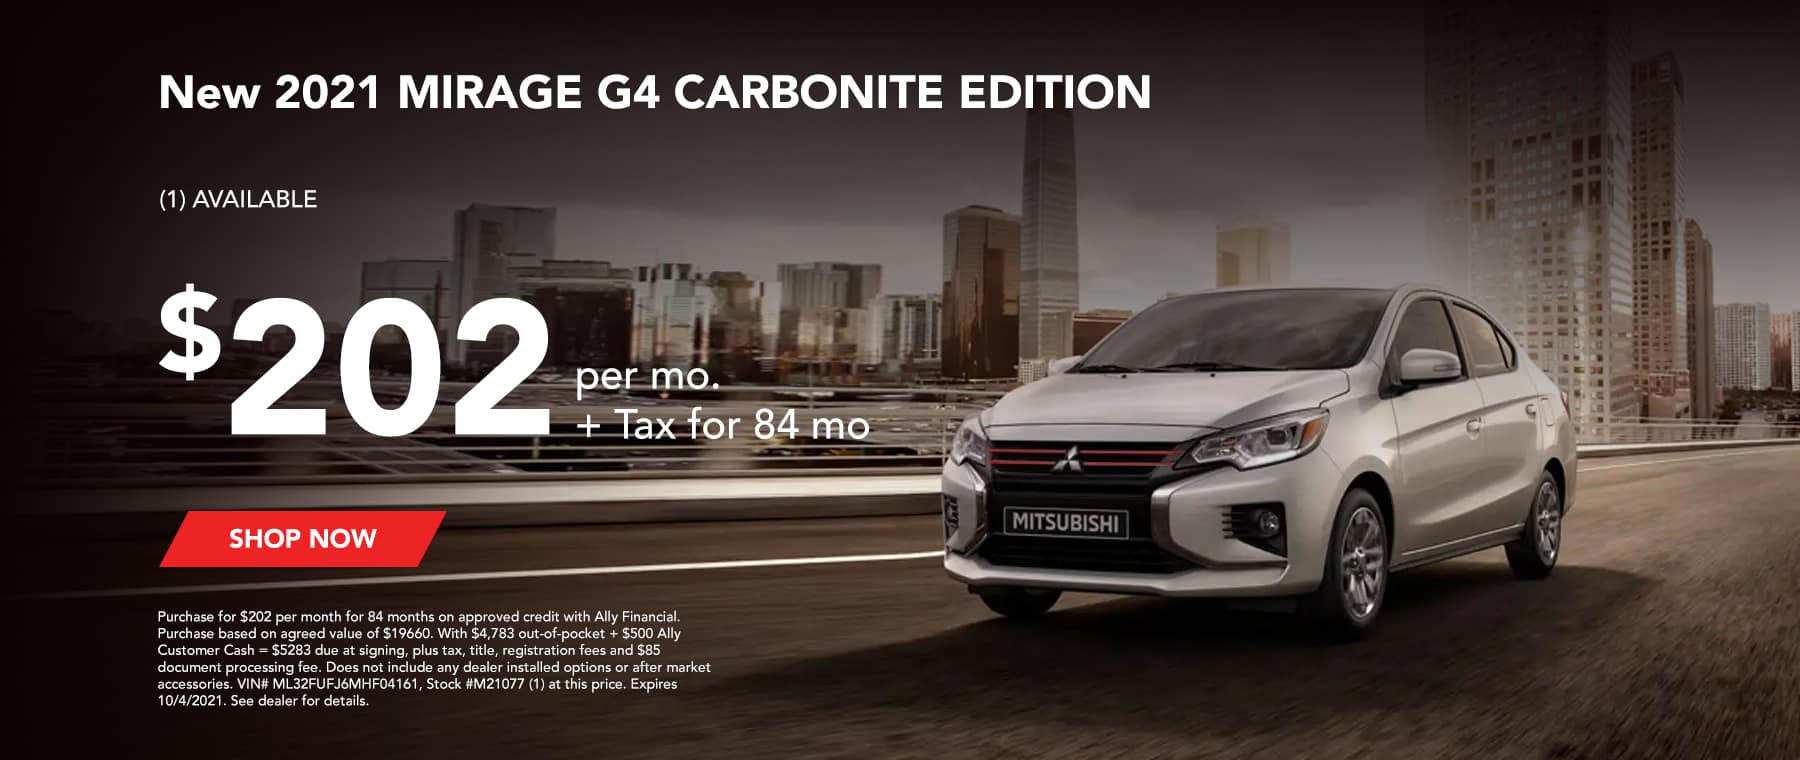 New 2021 MIRAGE G4 CARBONITE EDITION (1) AVAILABLE $202 per mo. + Tax